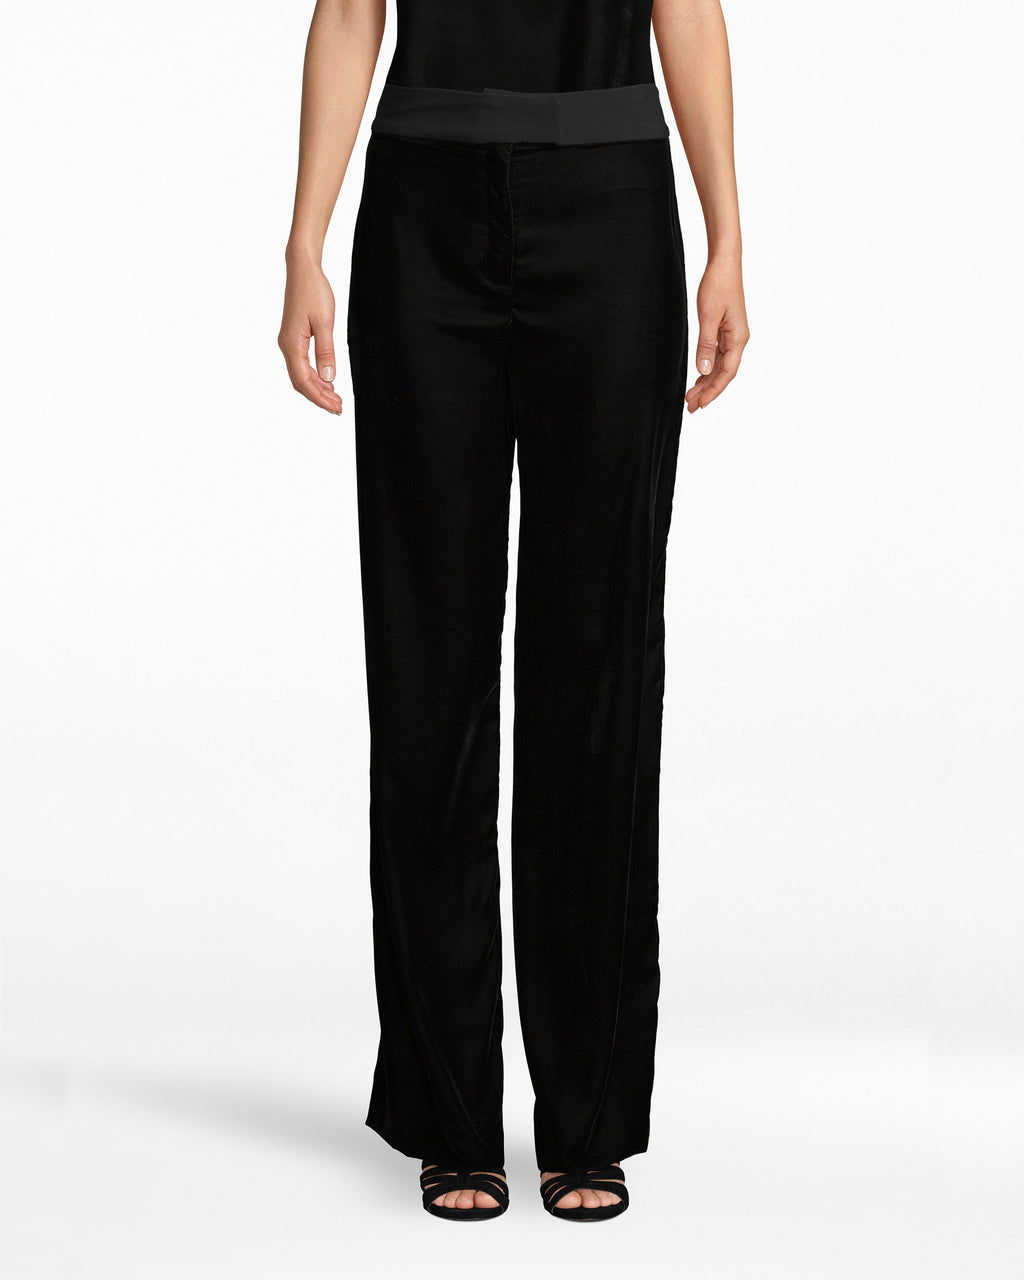 BB10222 - LIGHTWEIGHT VELVET WIDE LEG PANT - bottoms - pants - Velvet fashion is always in. Don these wide leg straight pants to your next occasion. The spandex waistband complements the flowy legs.